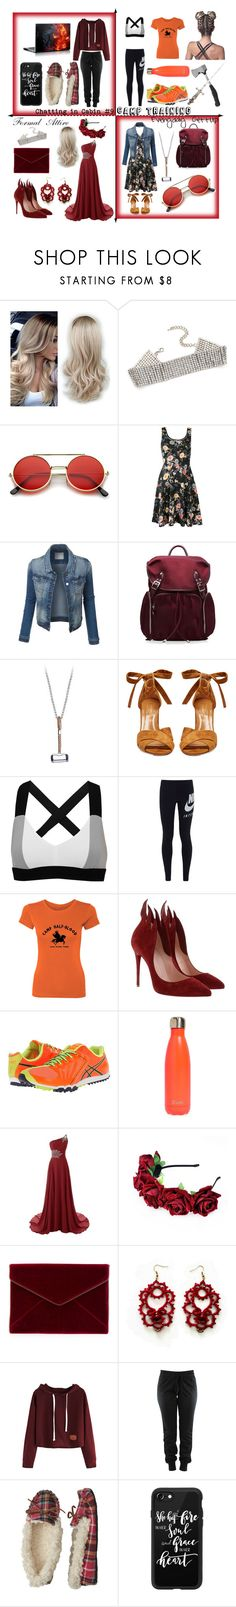 """""""Daughter of Hephaestus"""" by tiffany-du-plessis ❤ liked on Polyvore featuring ZeroUV, M Z Wallace, Marvel, Aquazzura, No Ka'Oi, NIKE, Christian Louboutin, Asics, S'well and Coleman"""